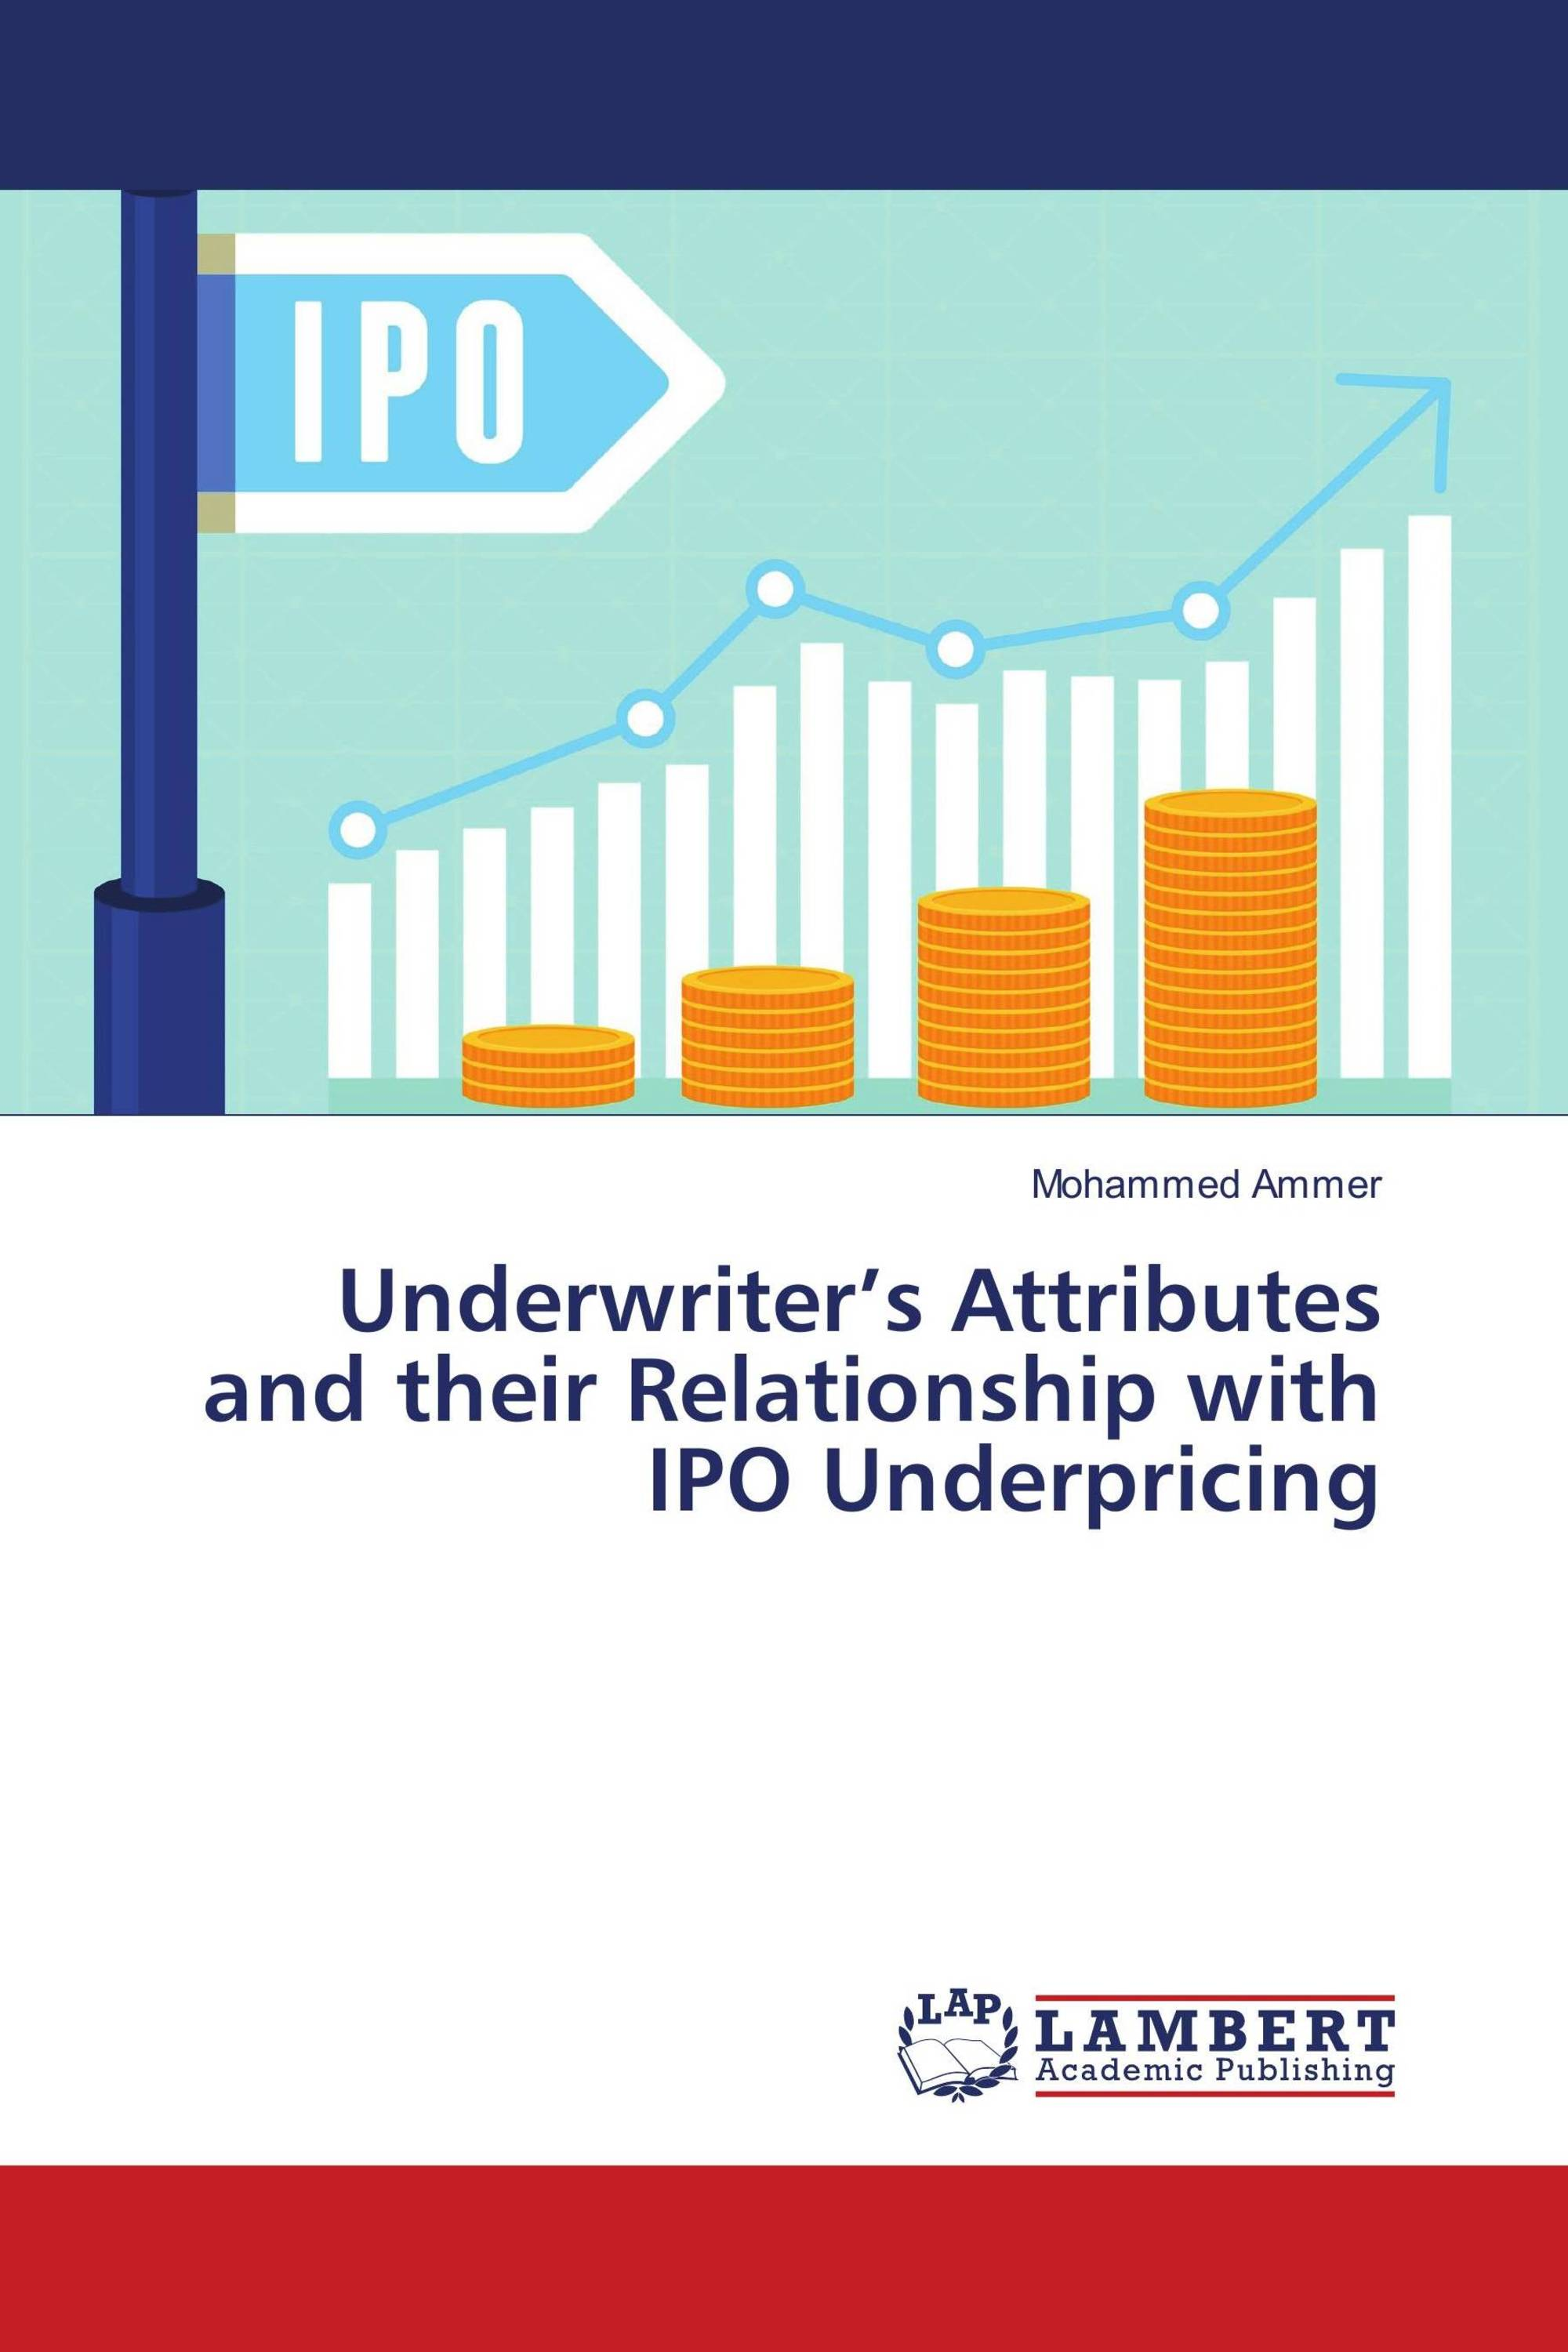 Why care about ipo underpricing